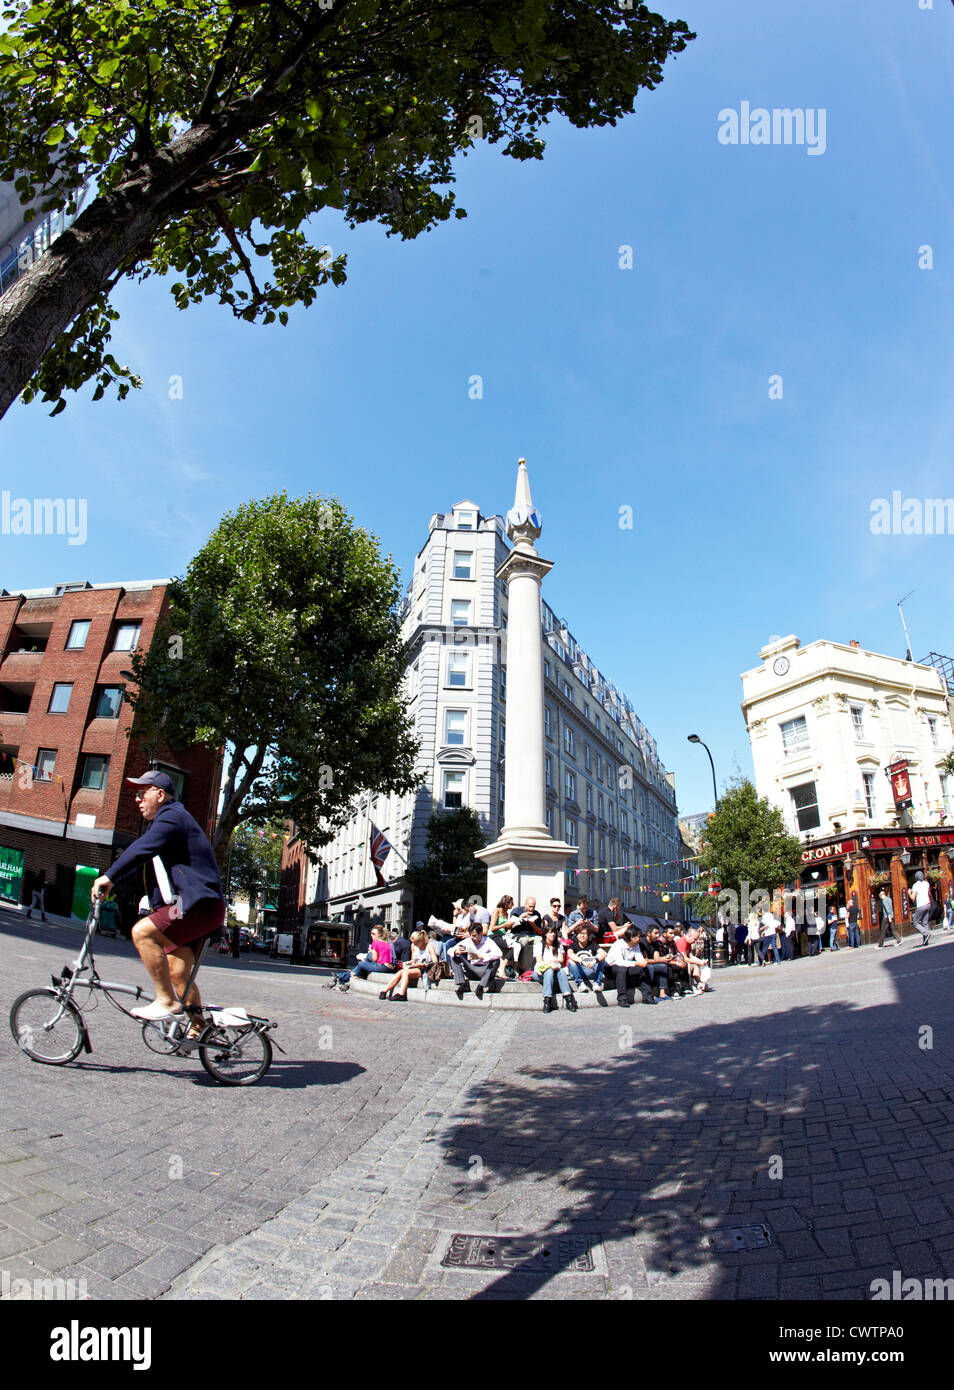 The Seven Dials London Uk - Stock Image